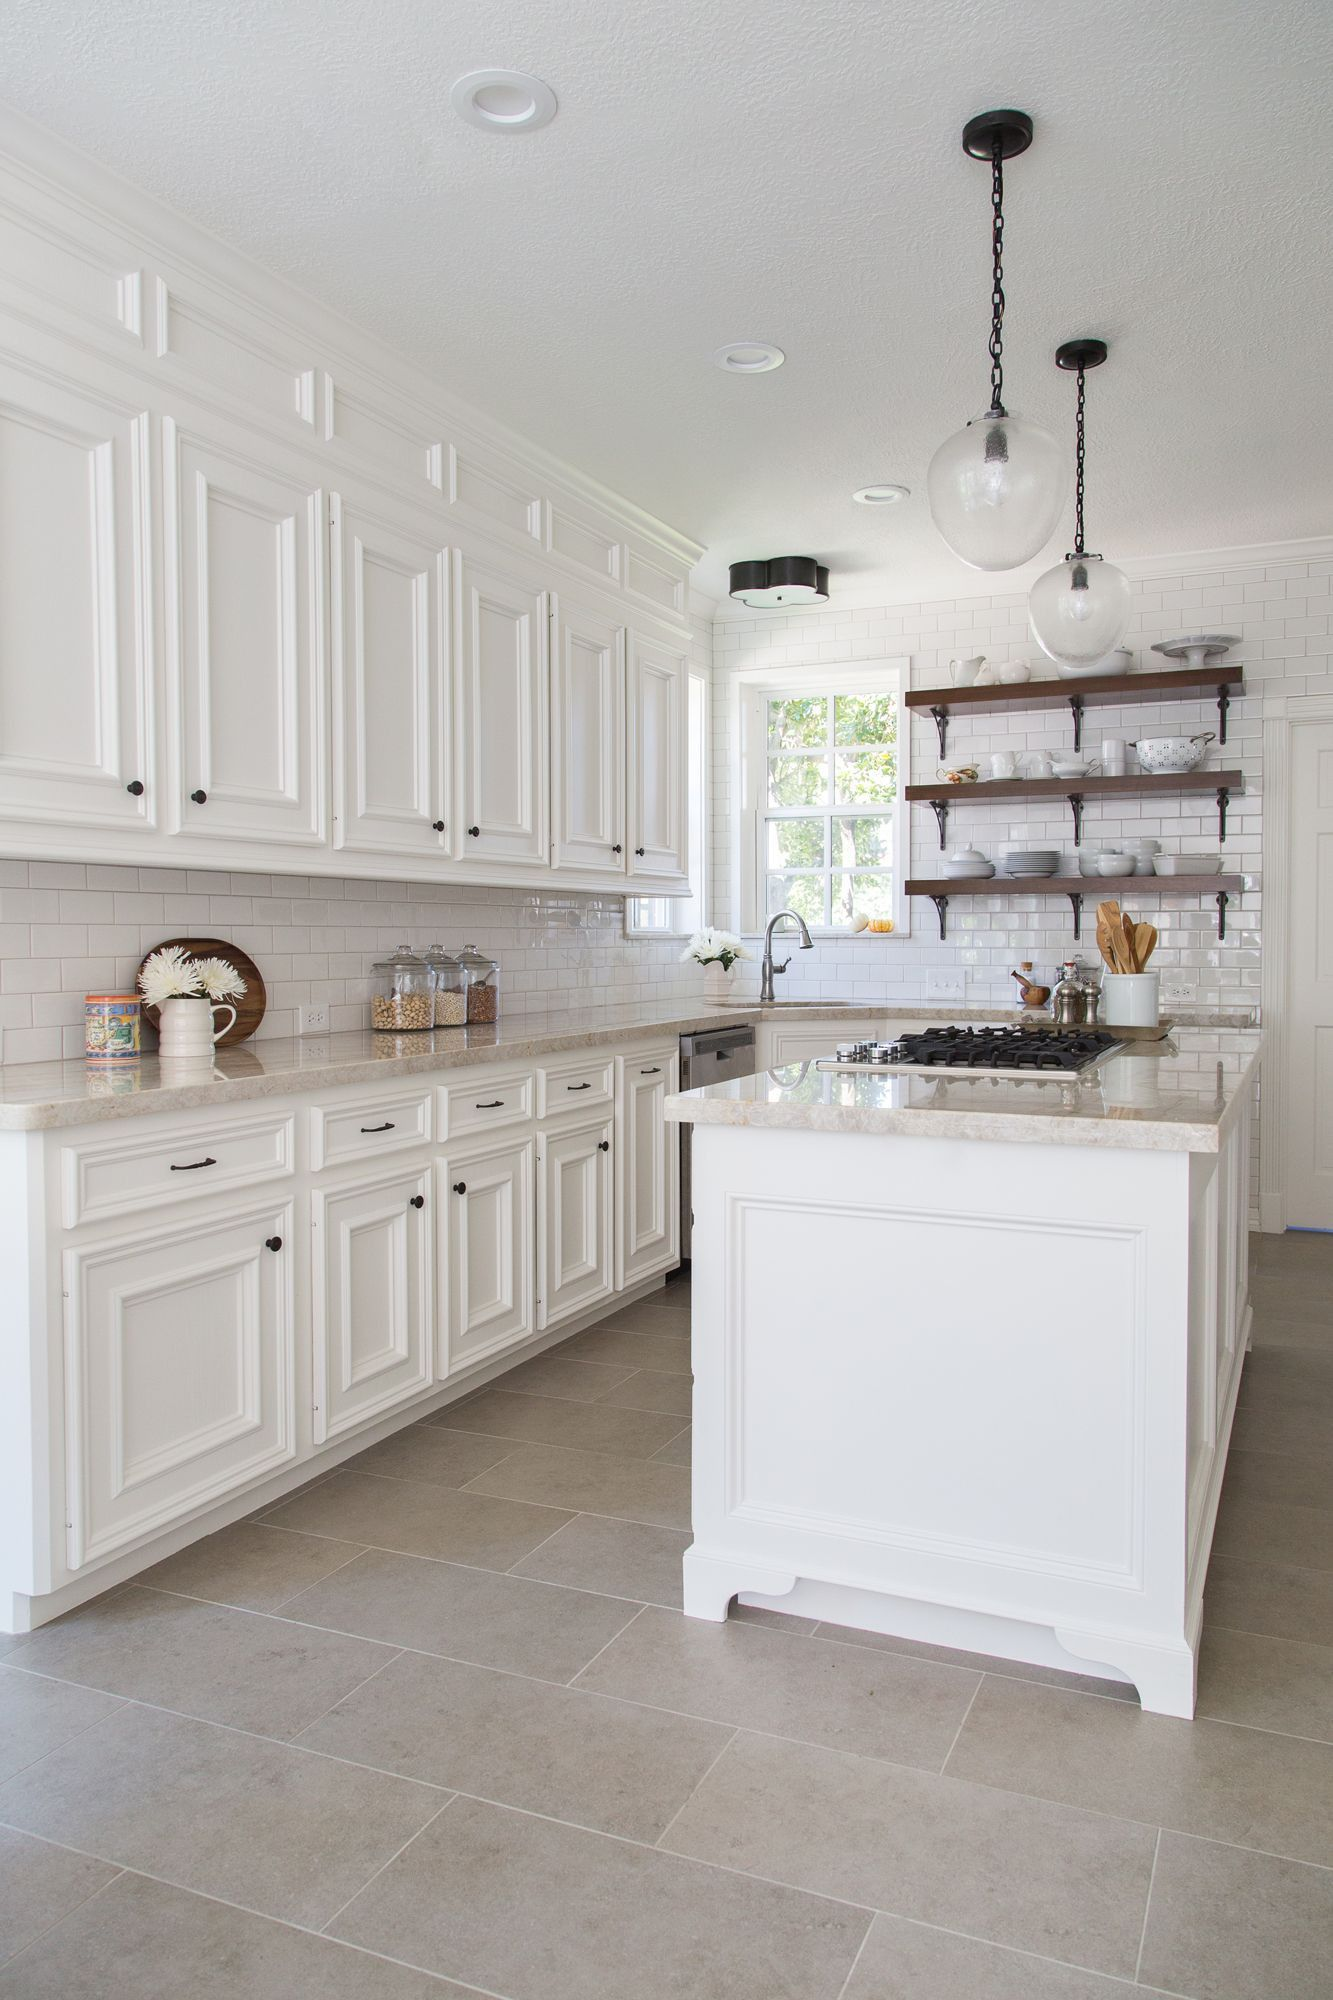 Awesome White Kitchen Cabinets with Light Tile Floor   Farmhouse ...